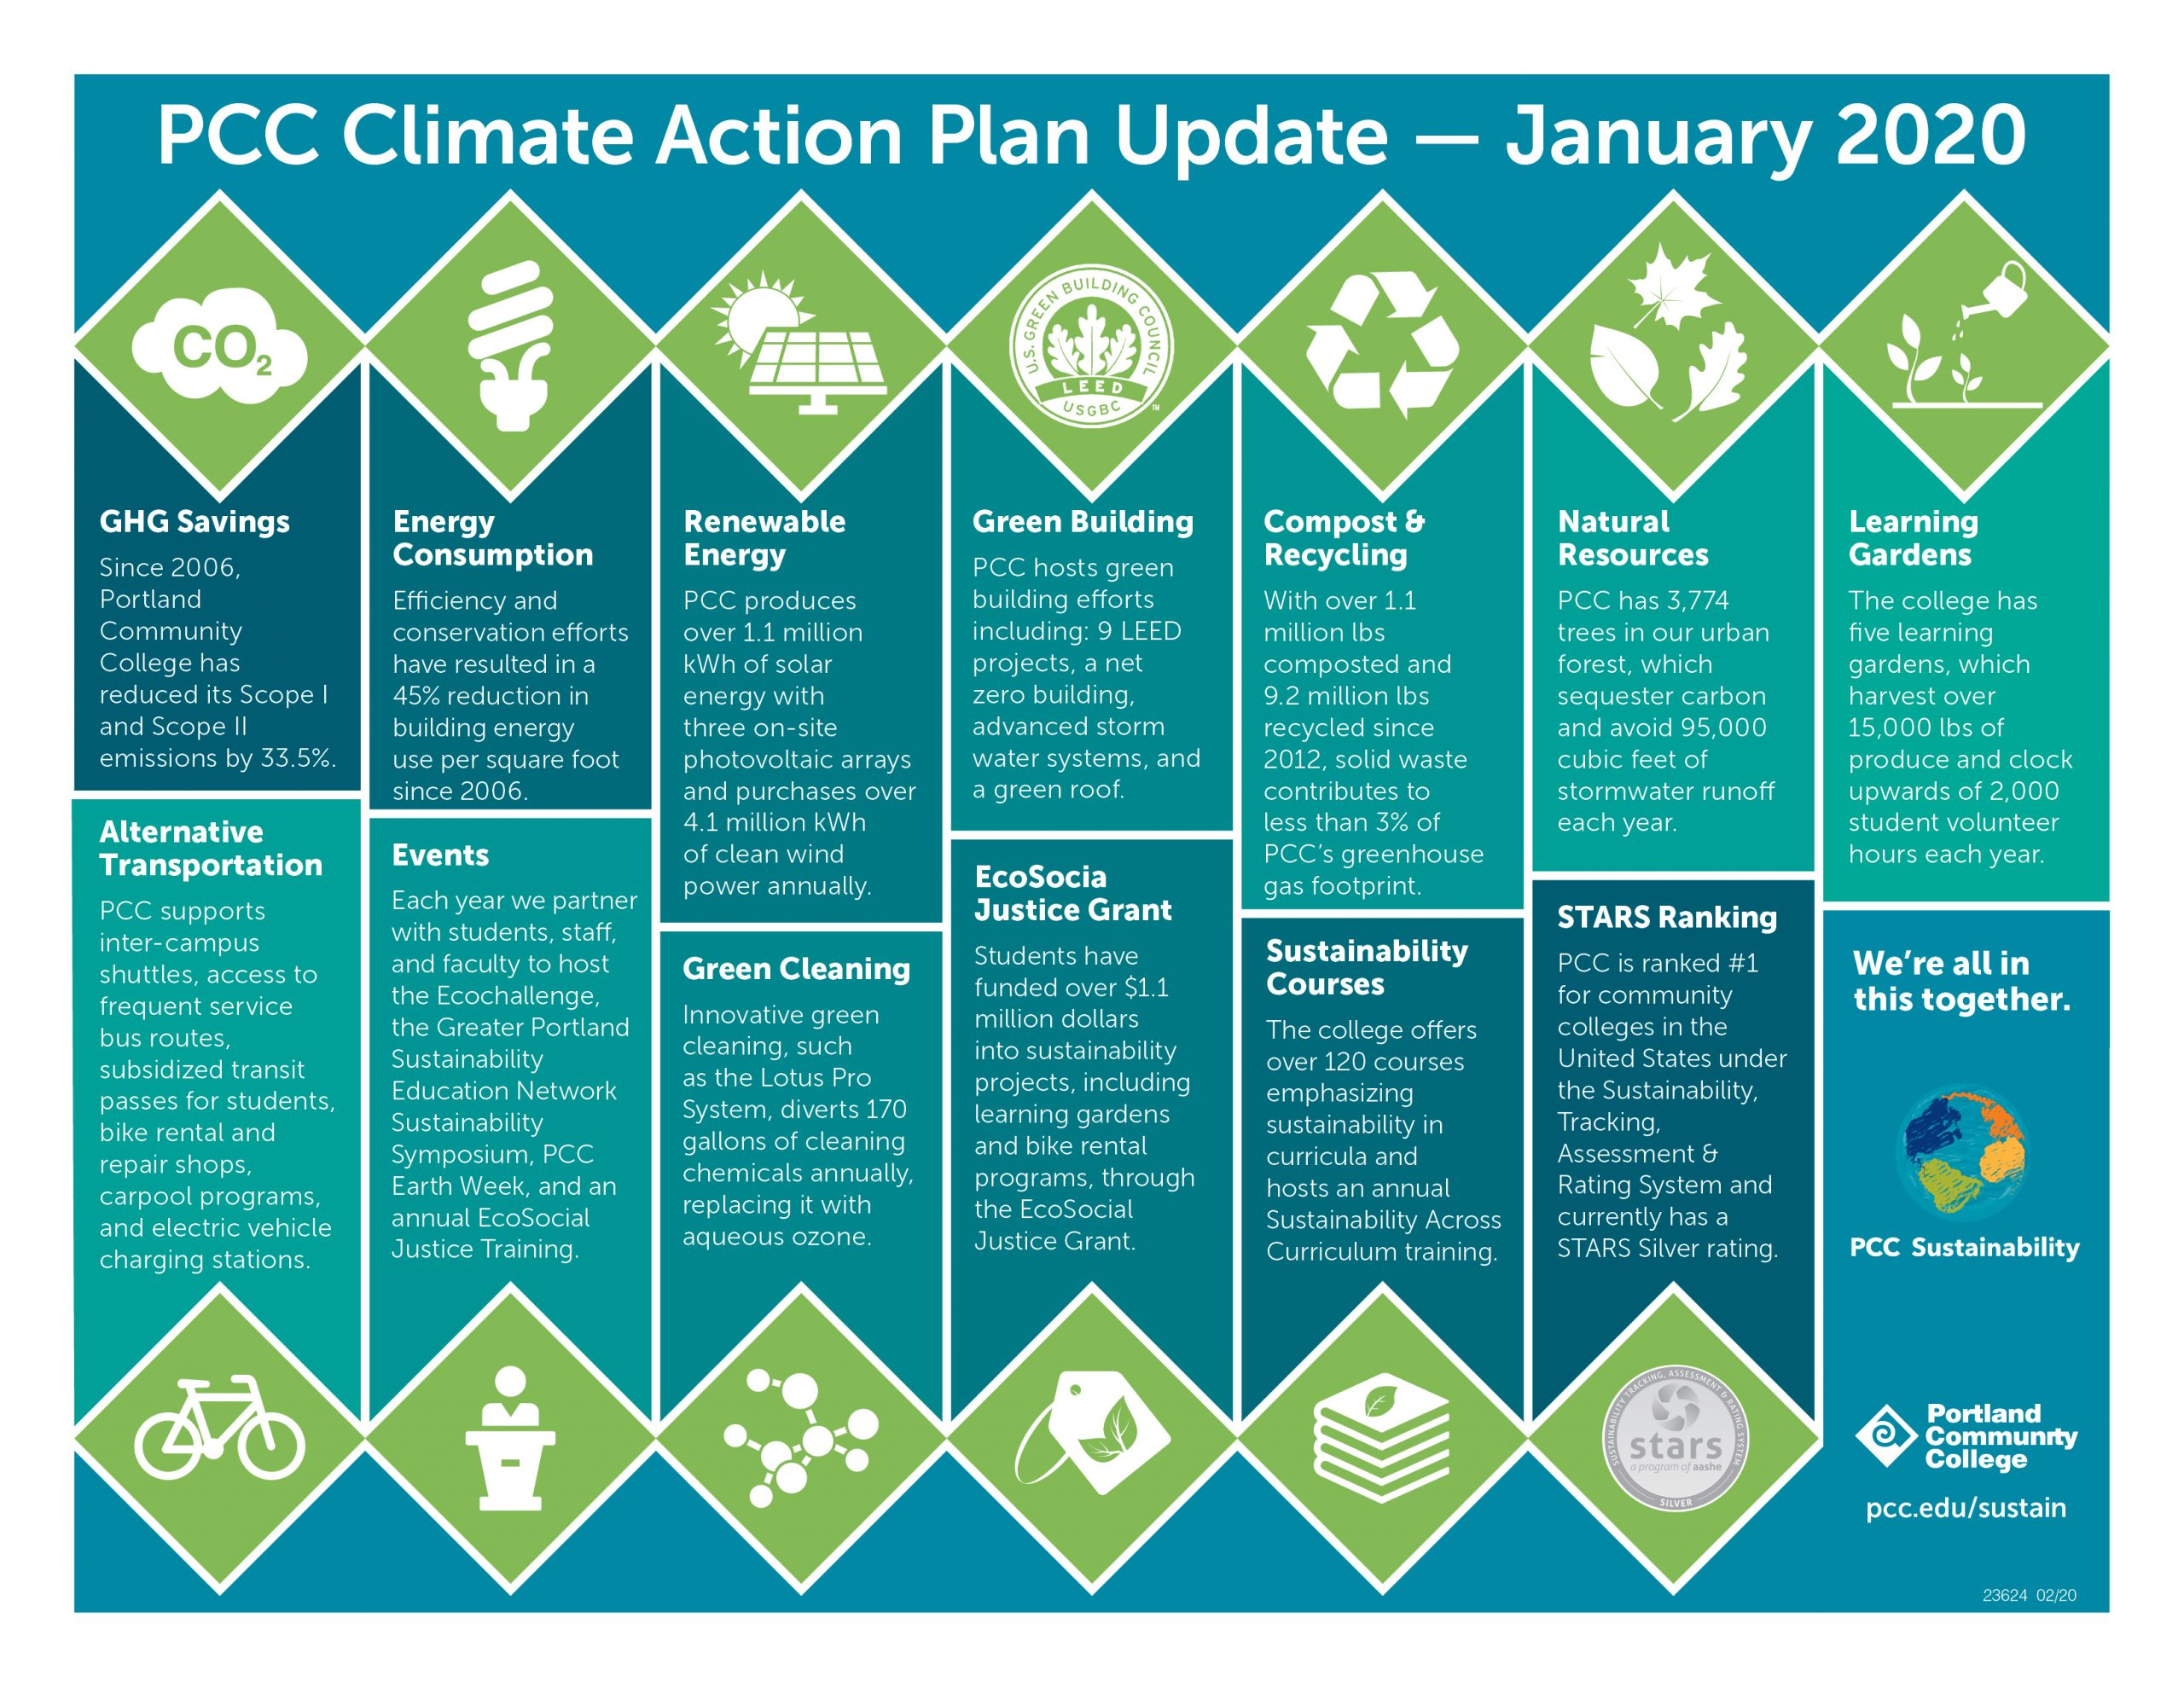 PCC's Climate Action Plan Update January 2020 Flyer